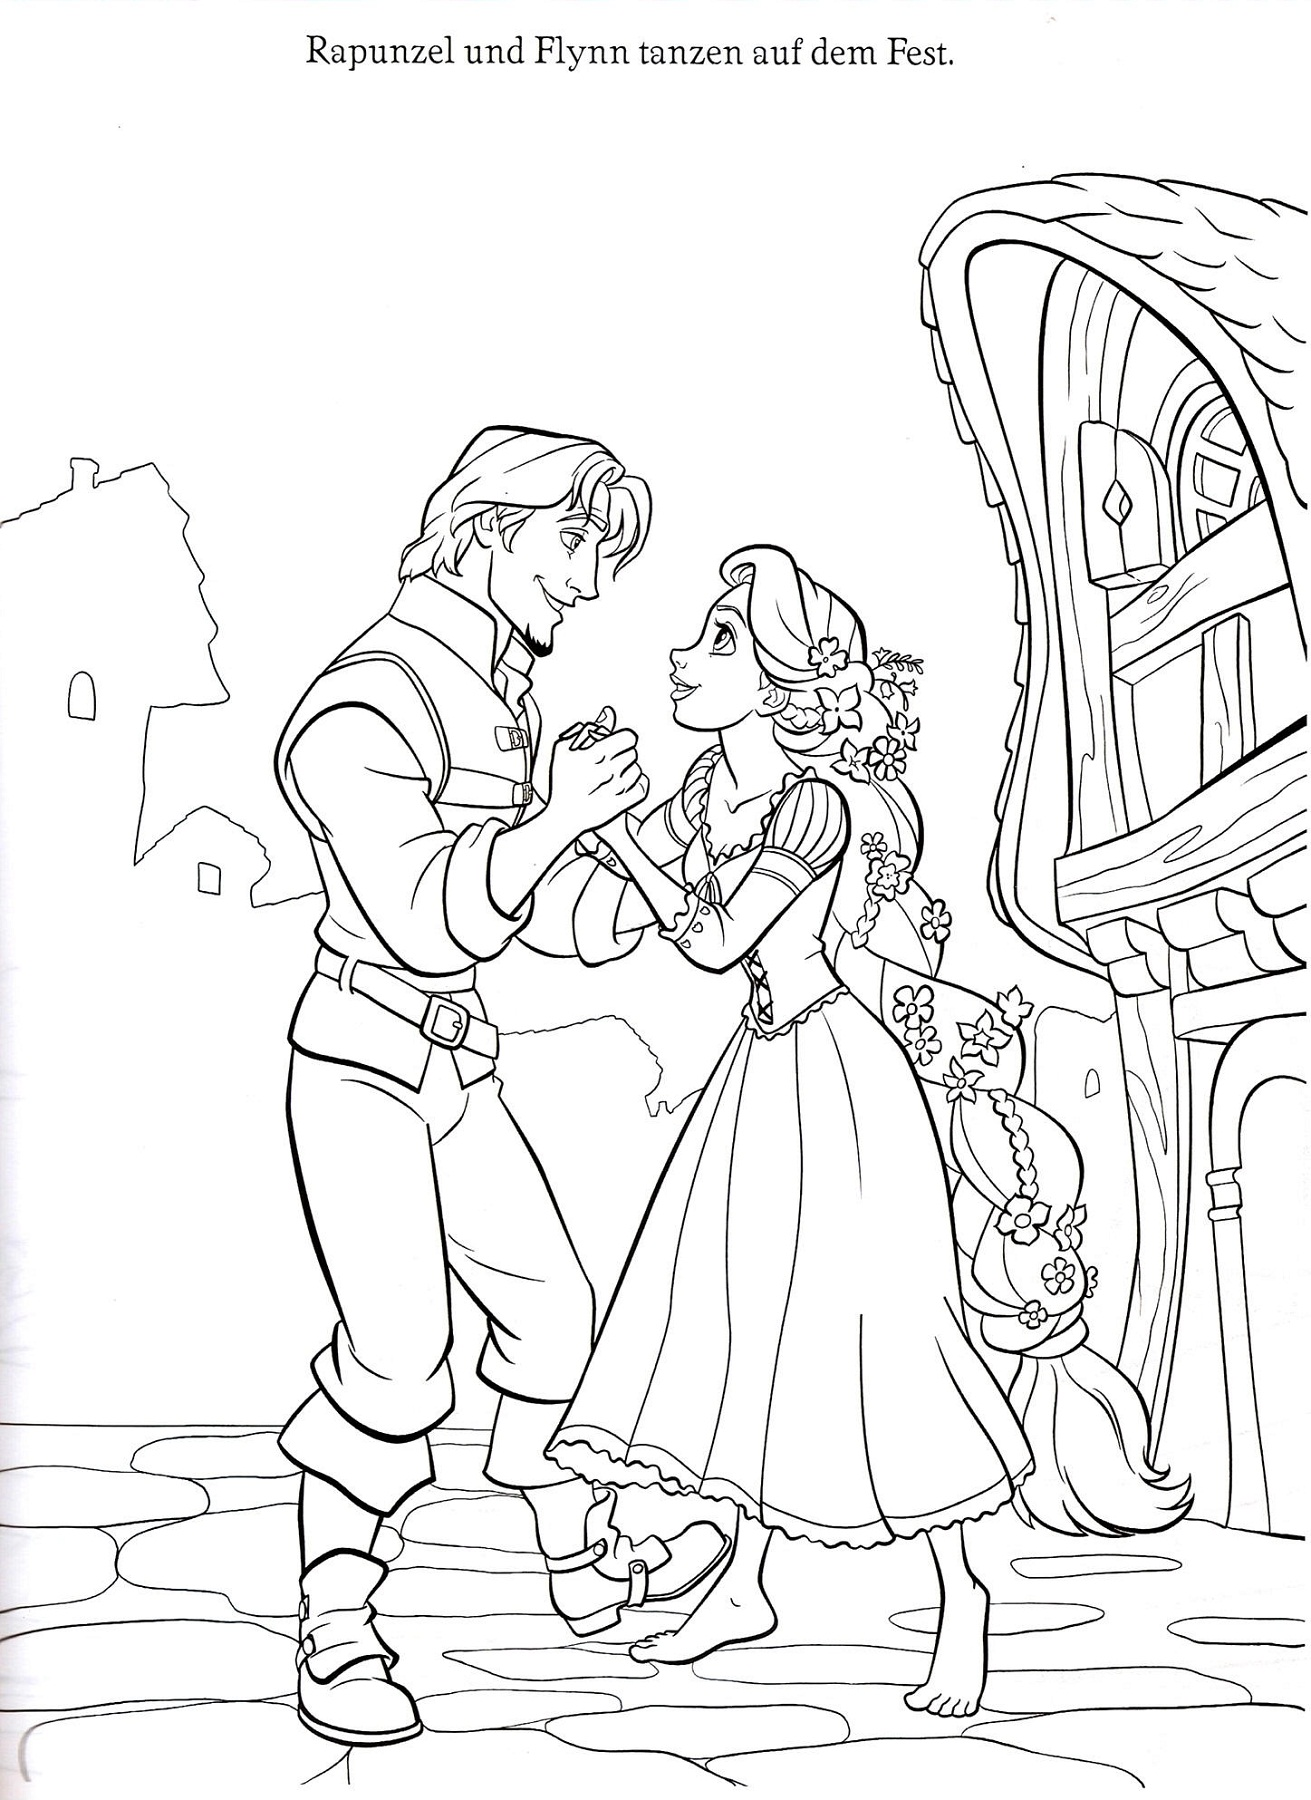 Rapunzel Color Pages to Print | Activity Shelter